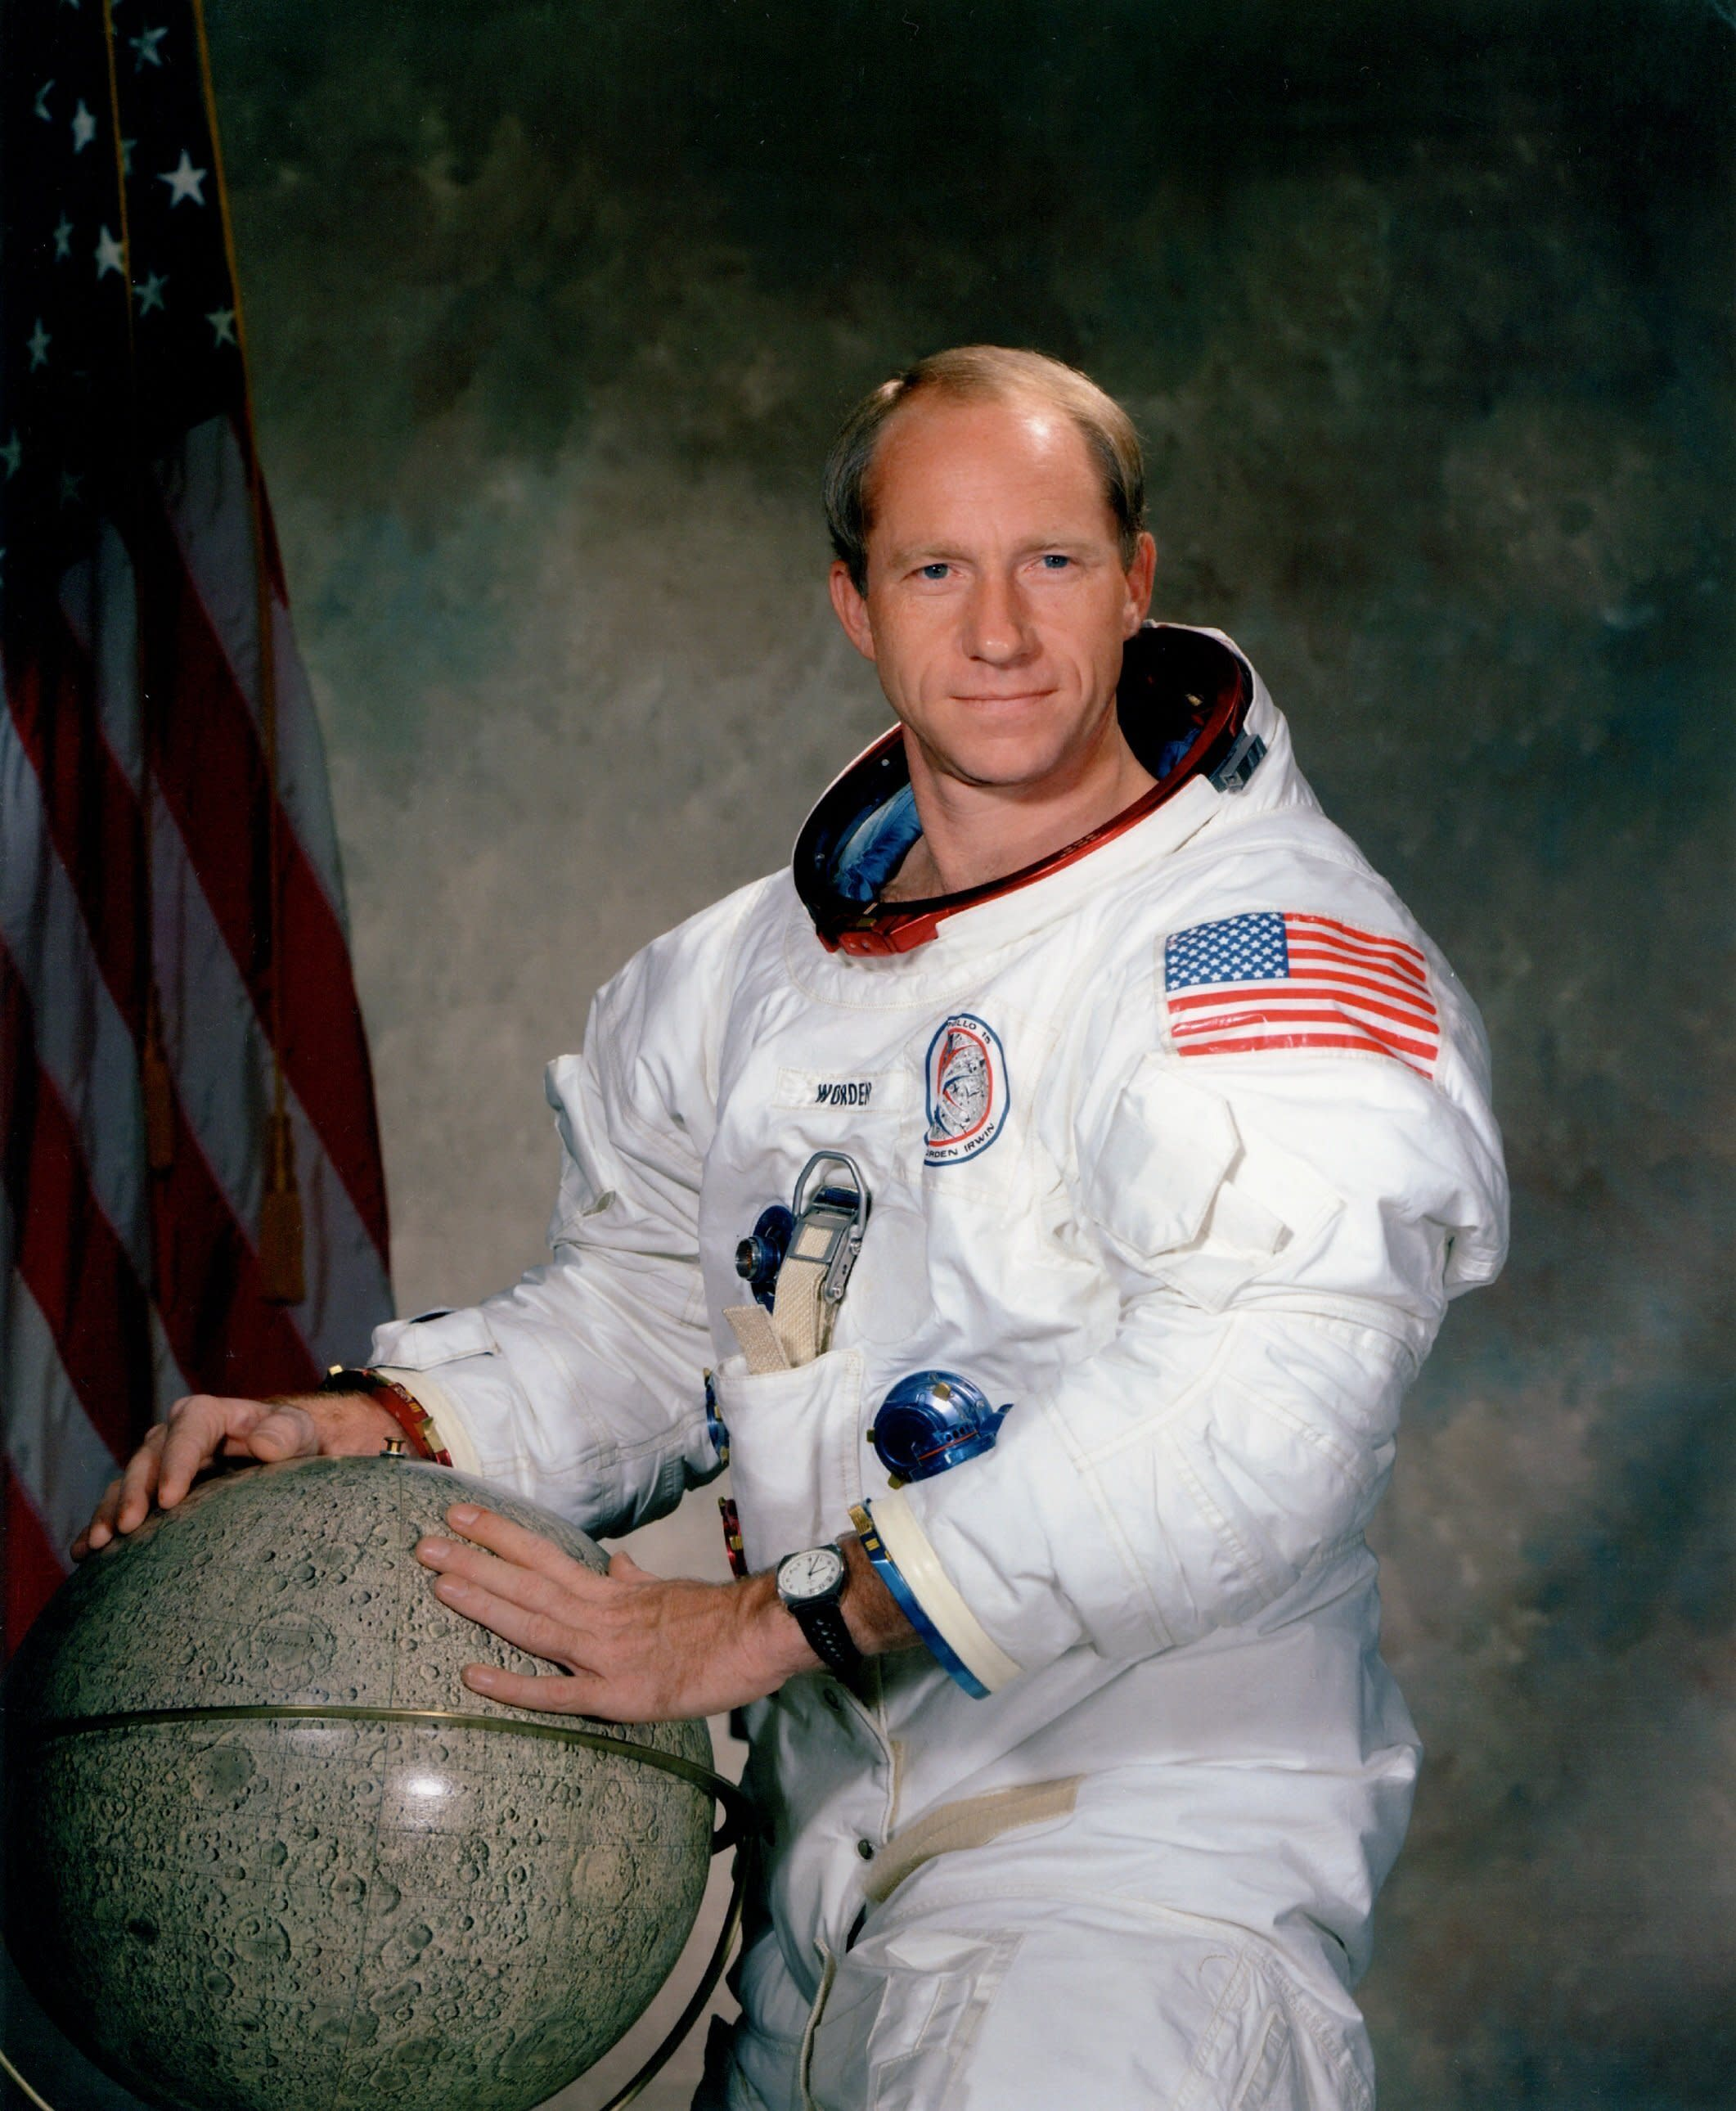 Astronaut Al Worden of Apollo 15 Dies at 88